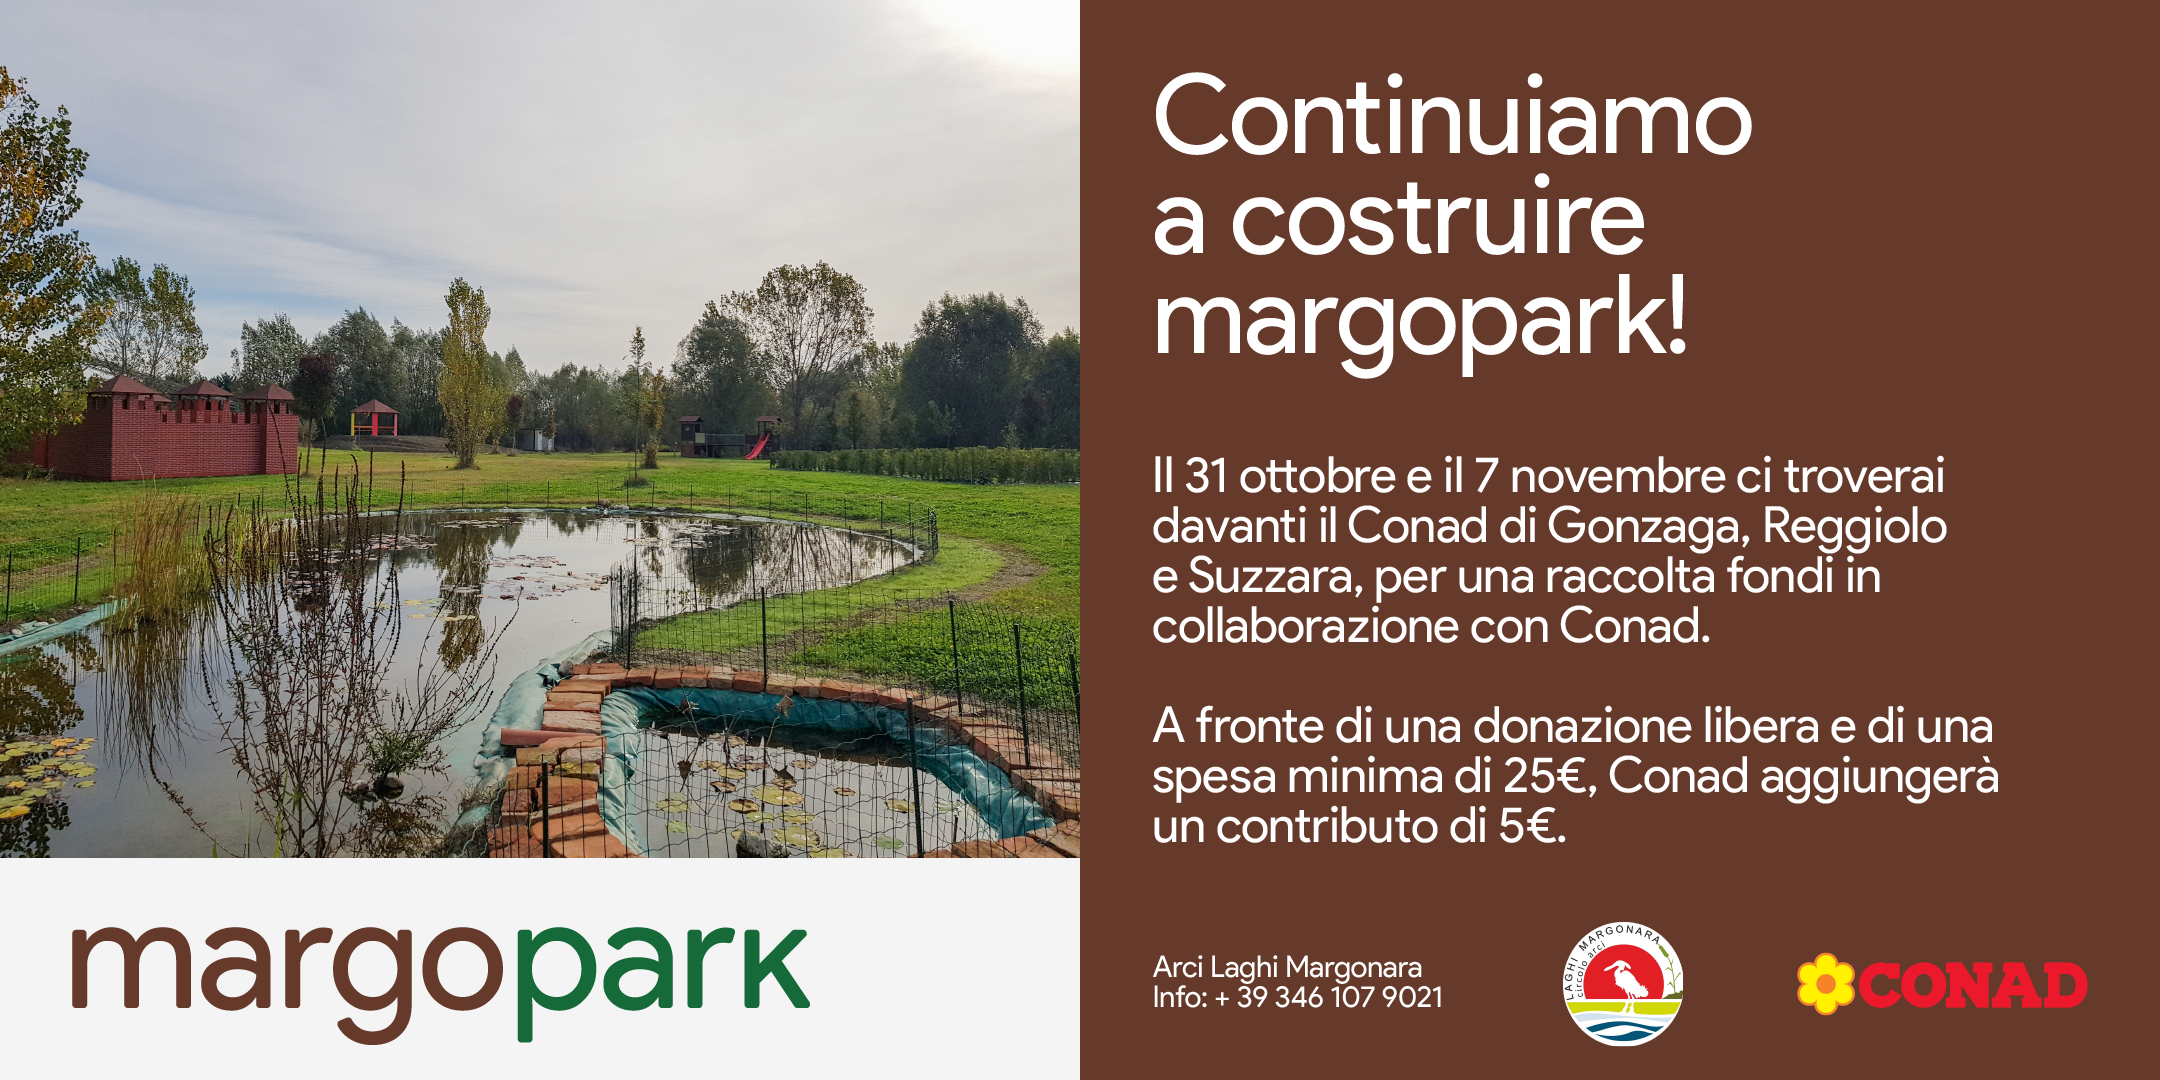 You are currently viewing Continuiamo a costruire Margopark!